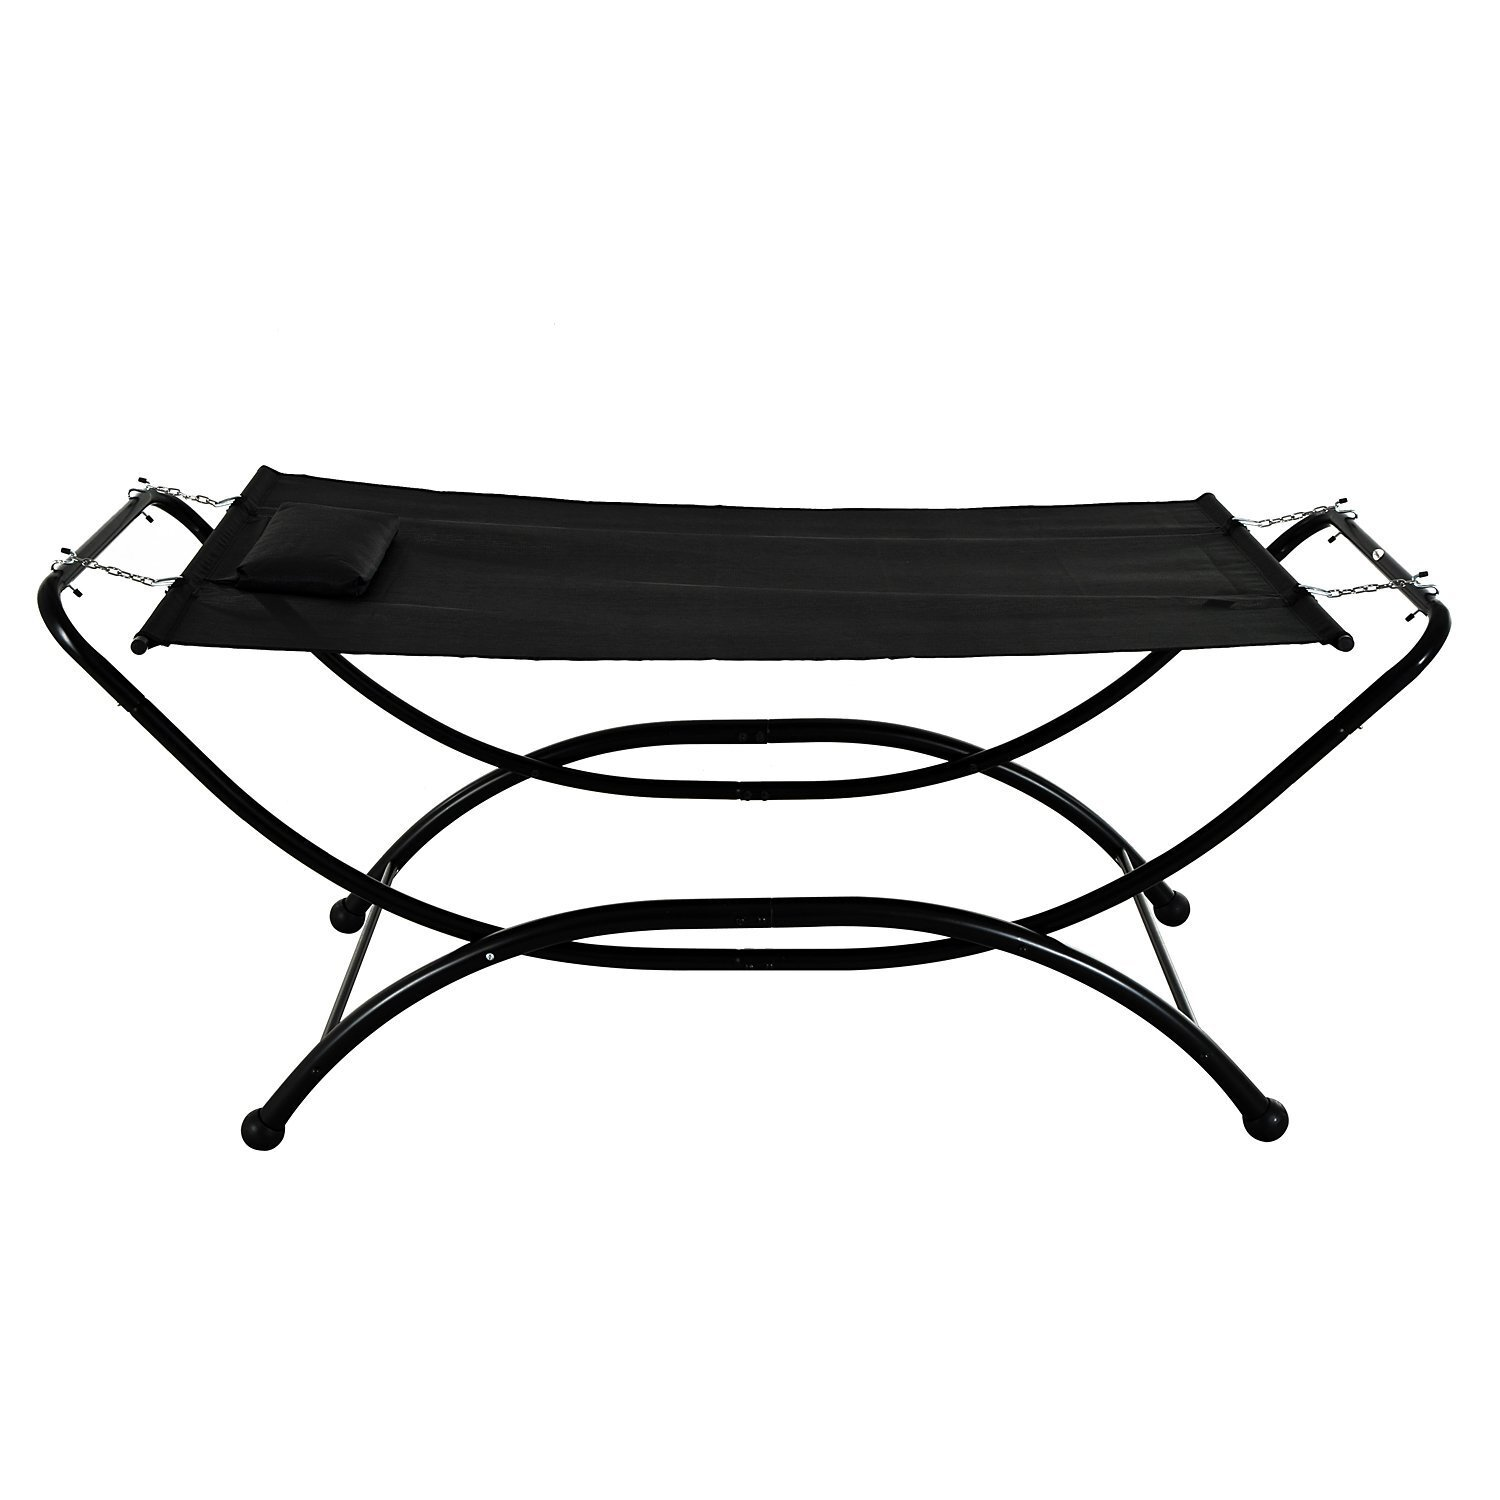 heavy outdoors depot hammock stands cha the n vivere stand home b patio hammocks furniture charcoal duty universal in steel